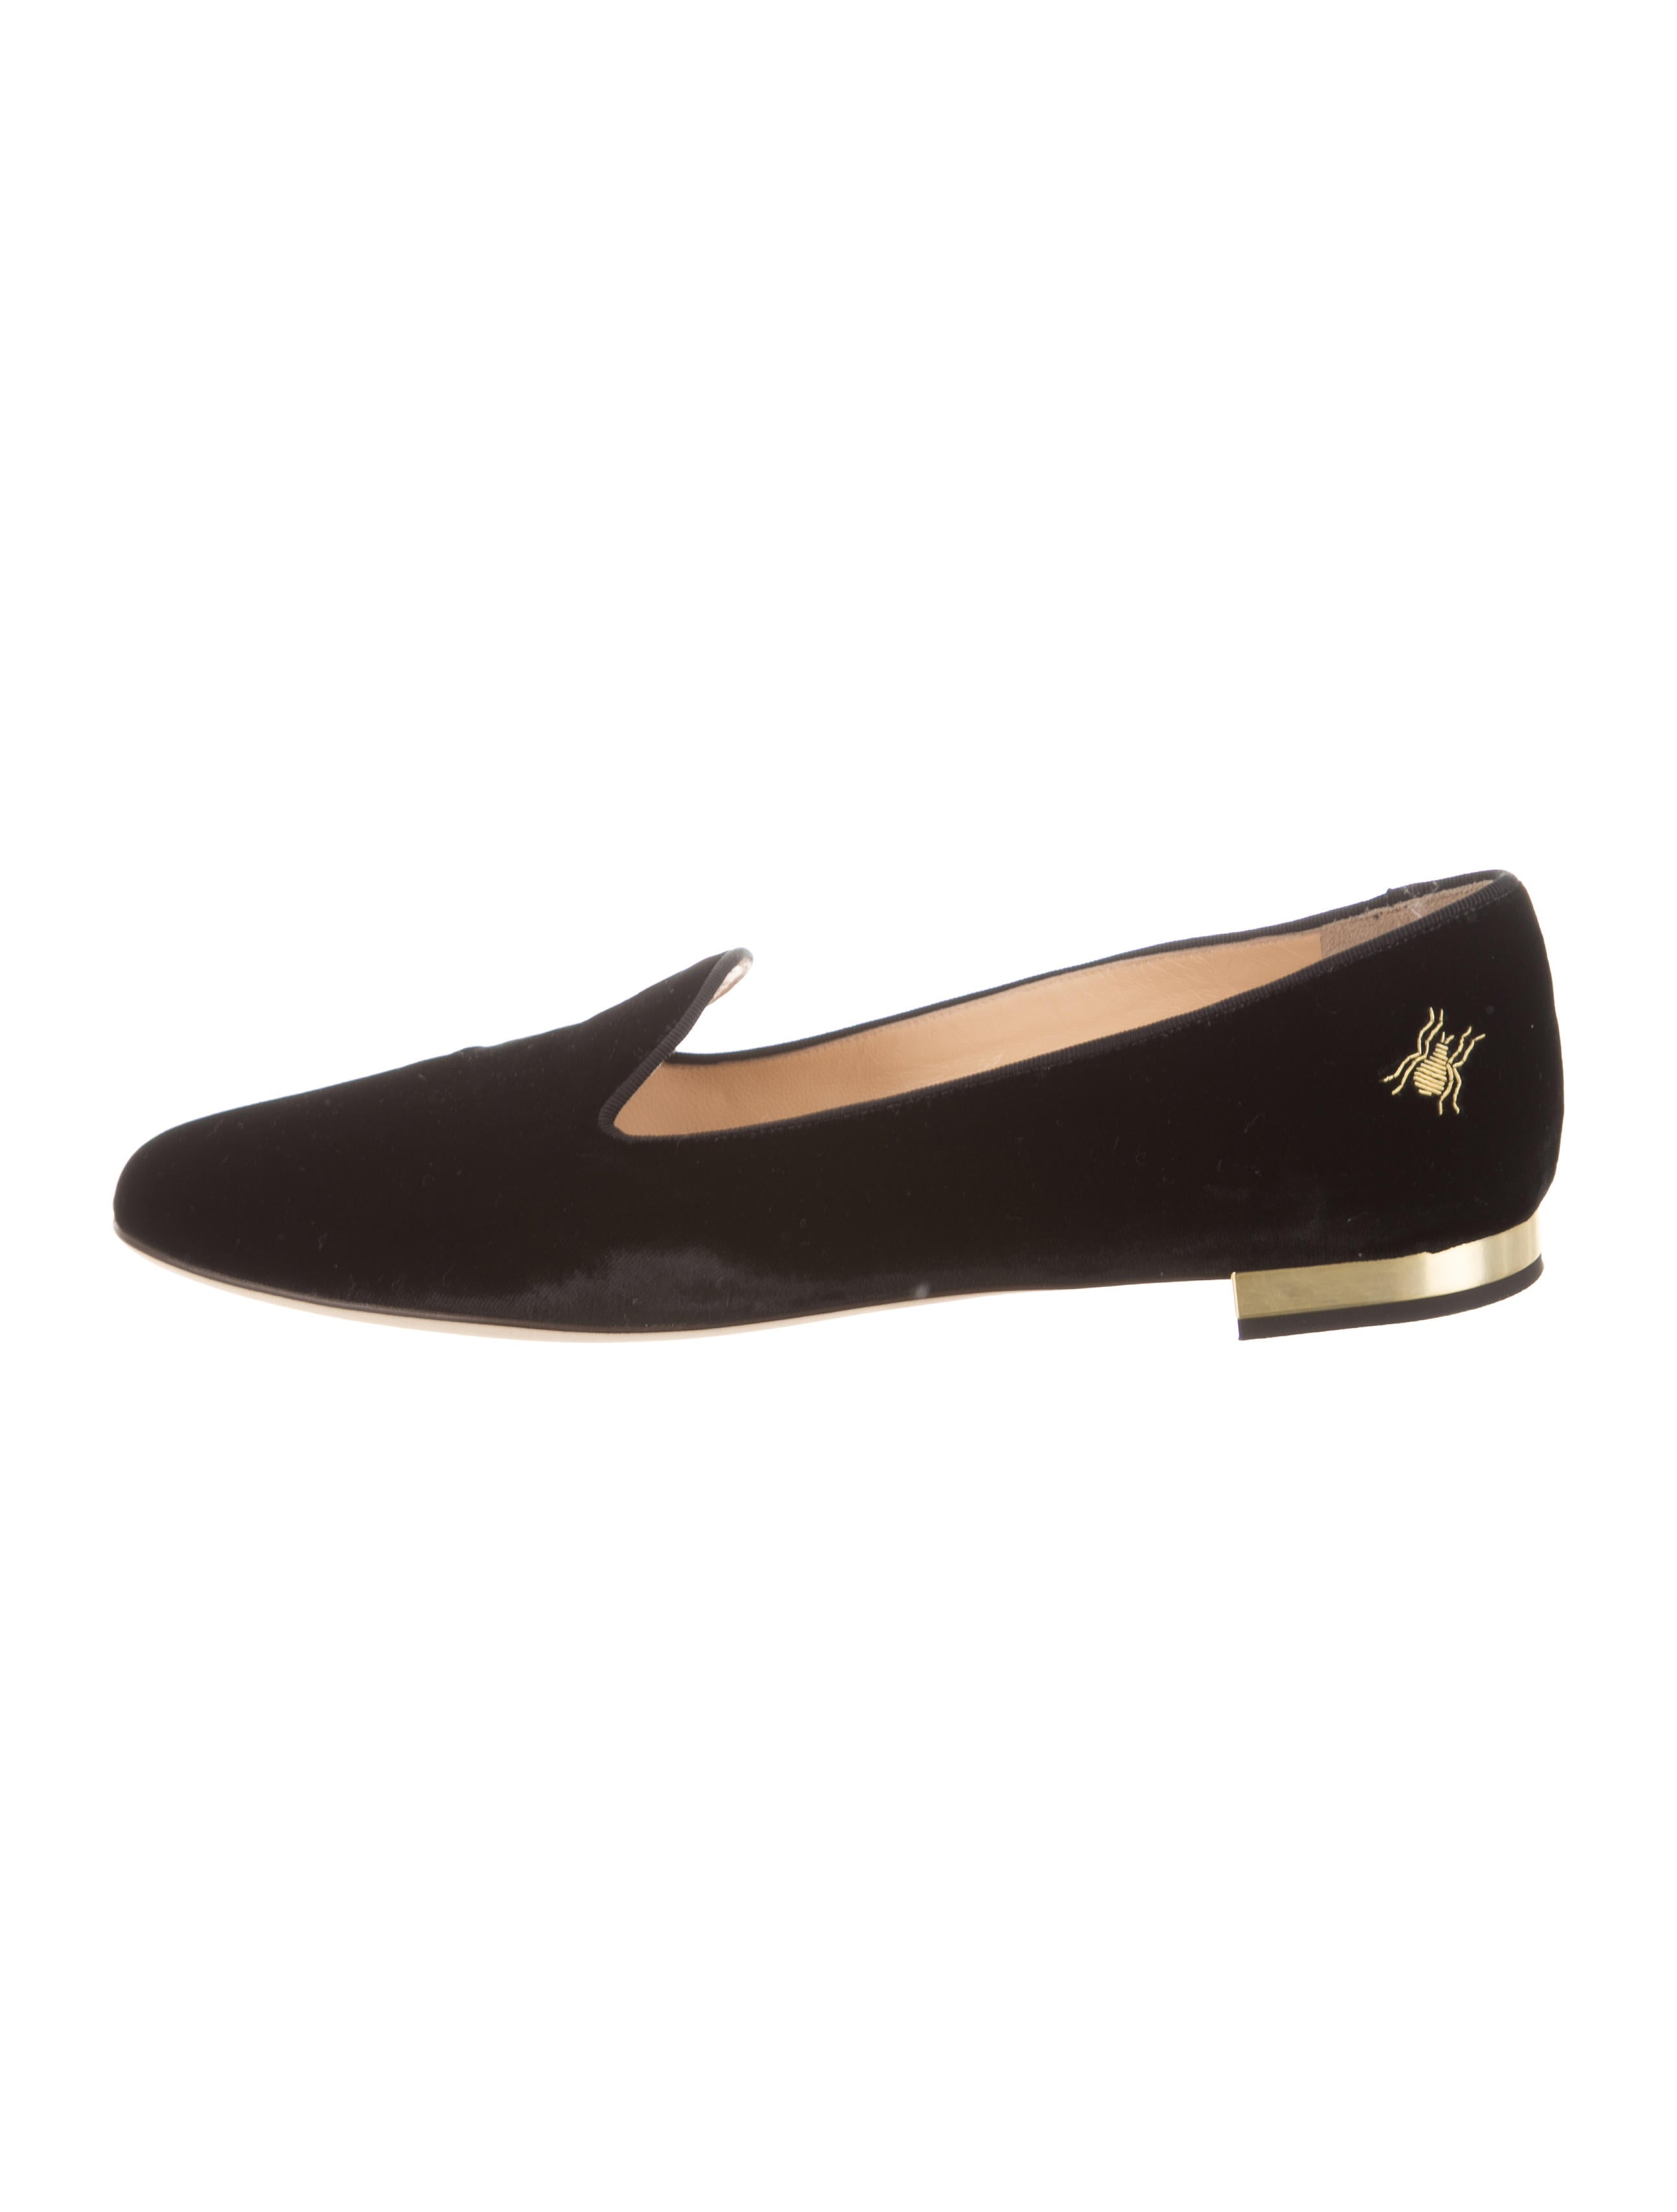 discount sast shop offer for sale Charlotte Olympia Velvet Round-Toe Loafers w/ Tags low cost sale online wxEhc7lYl